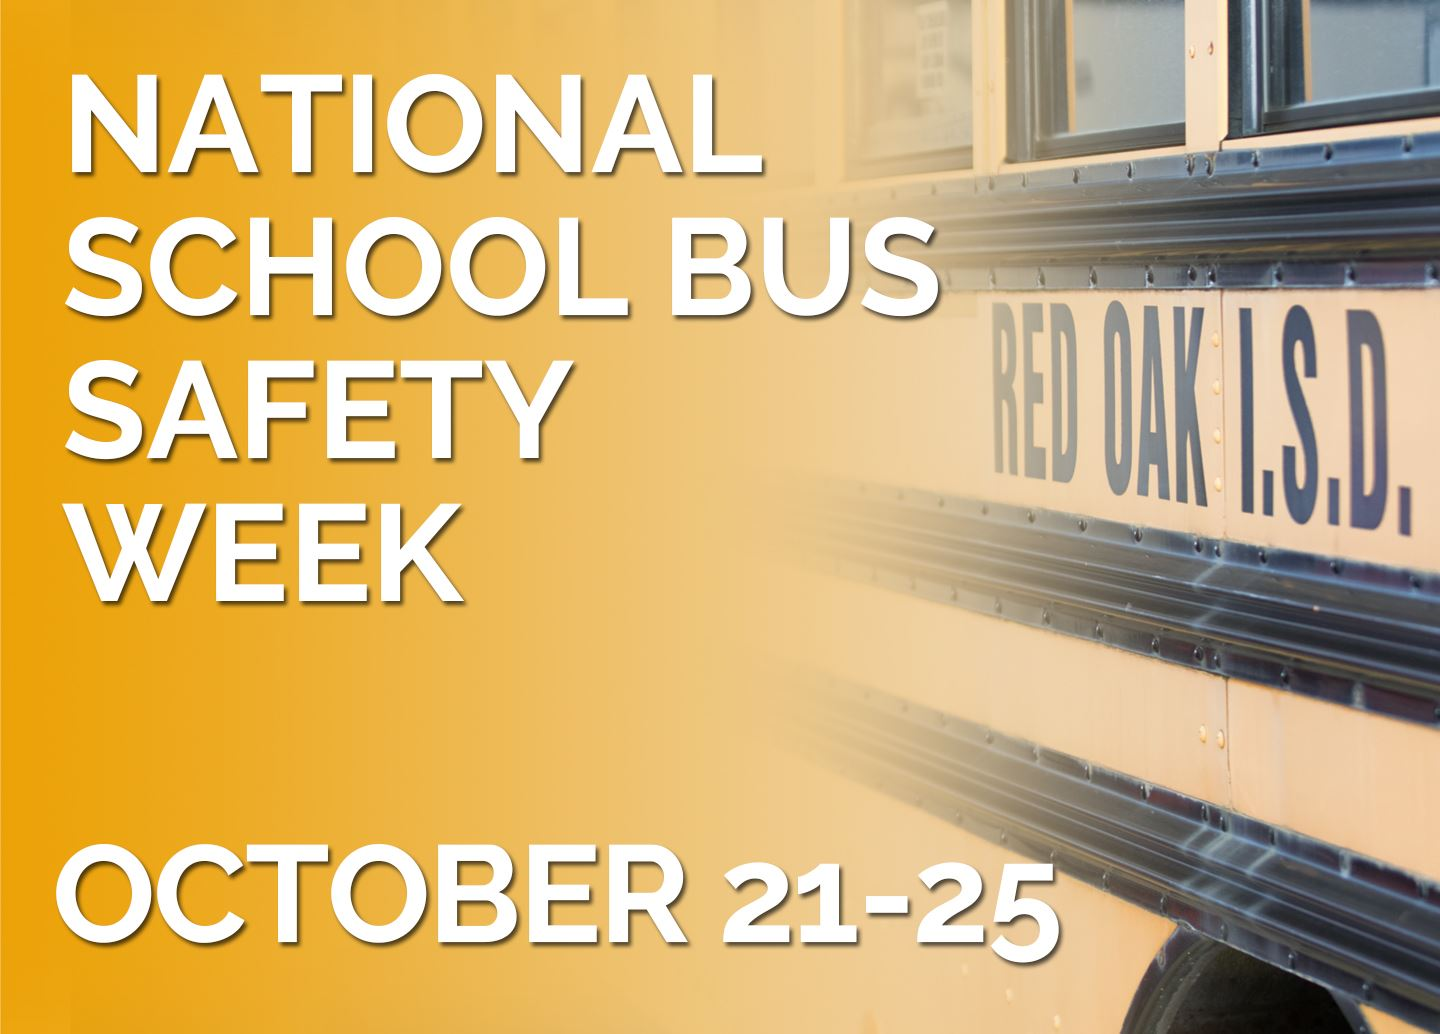 National School Bus Safety Week from October 21 - 25